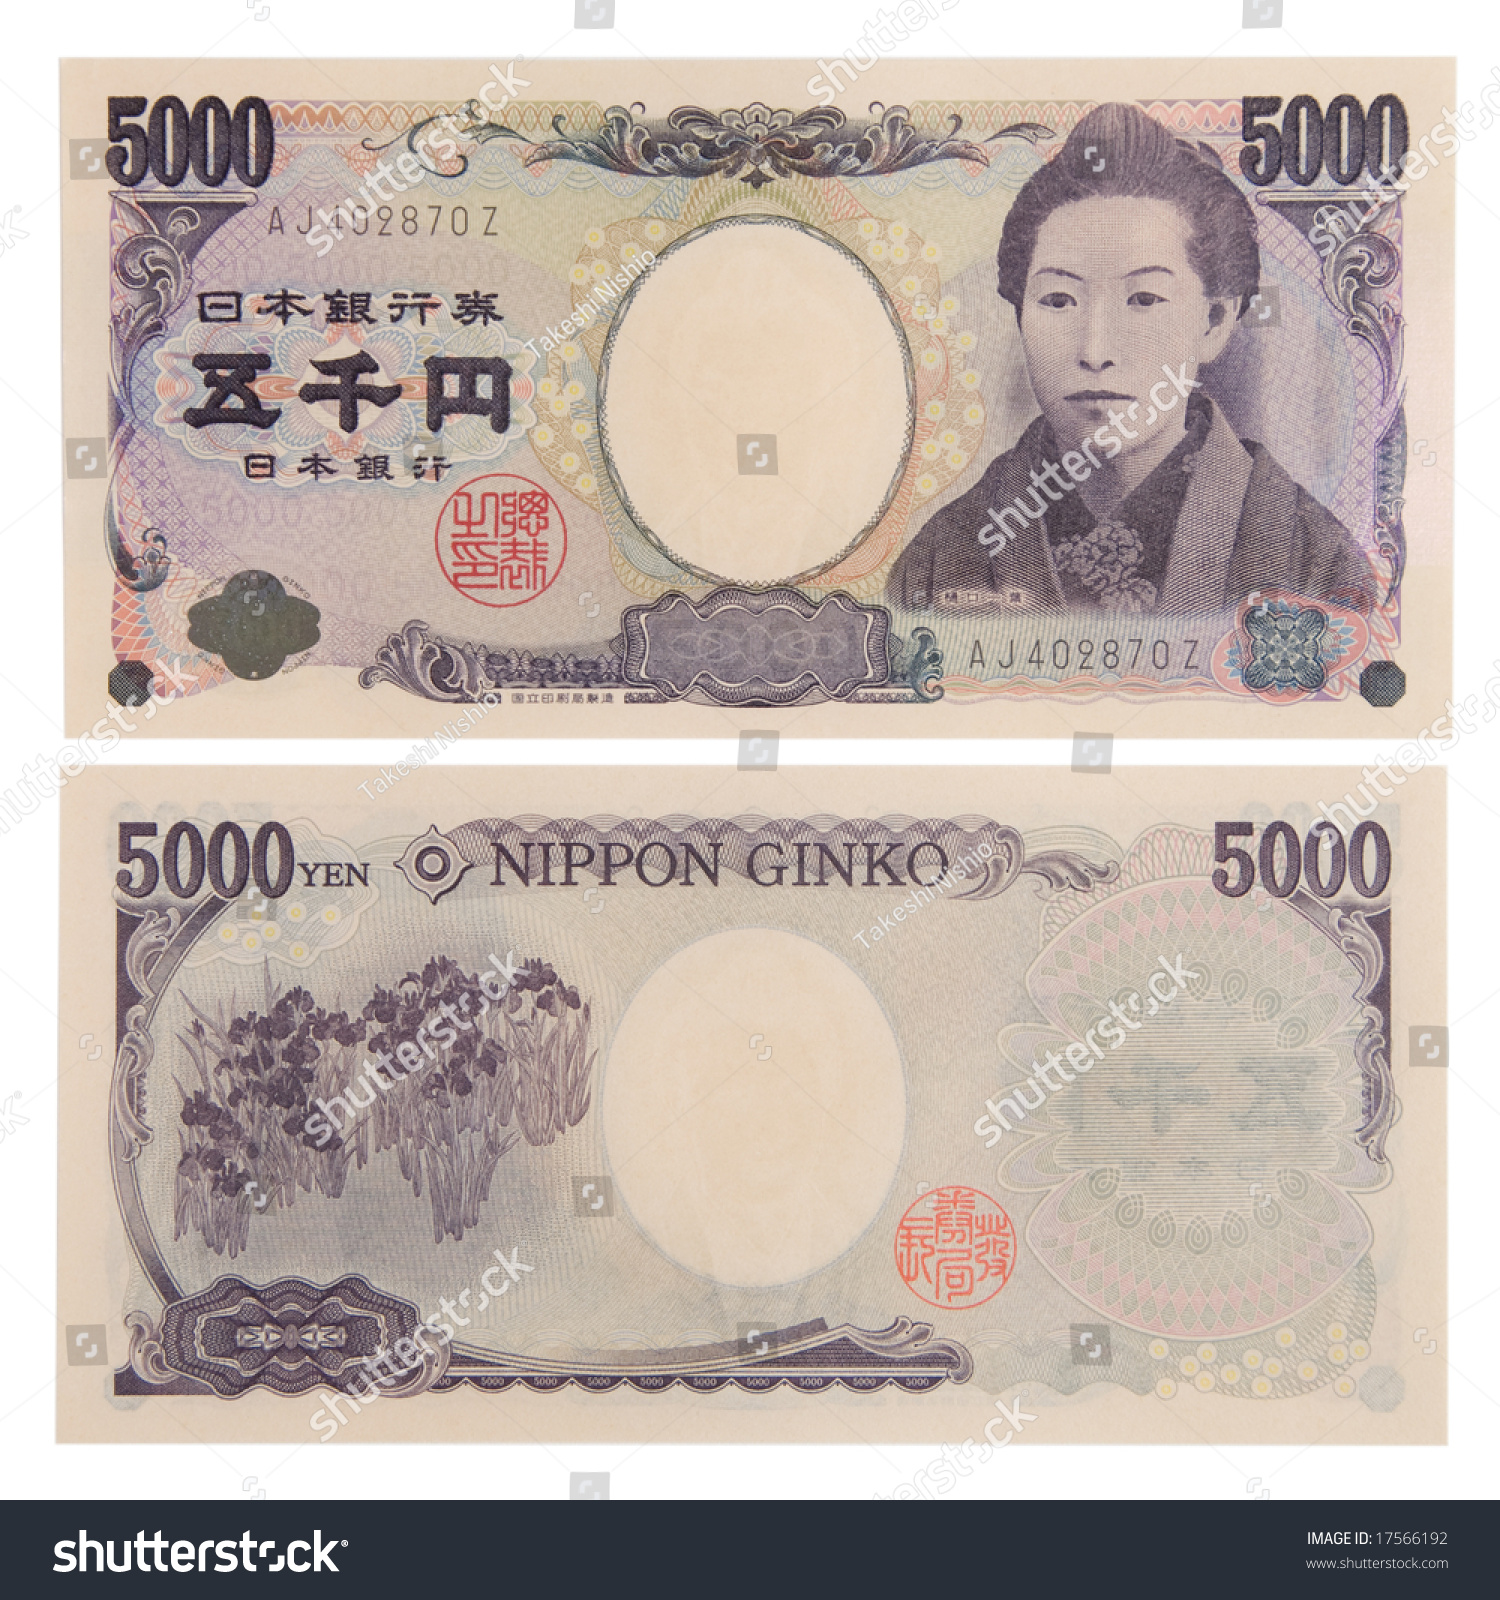 Face and back of the japanese yen five thousand yen